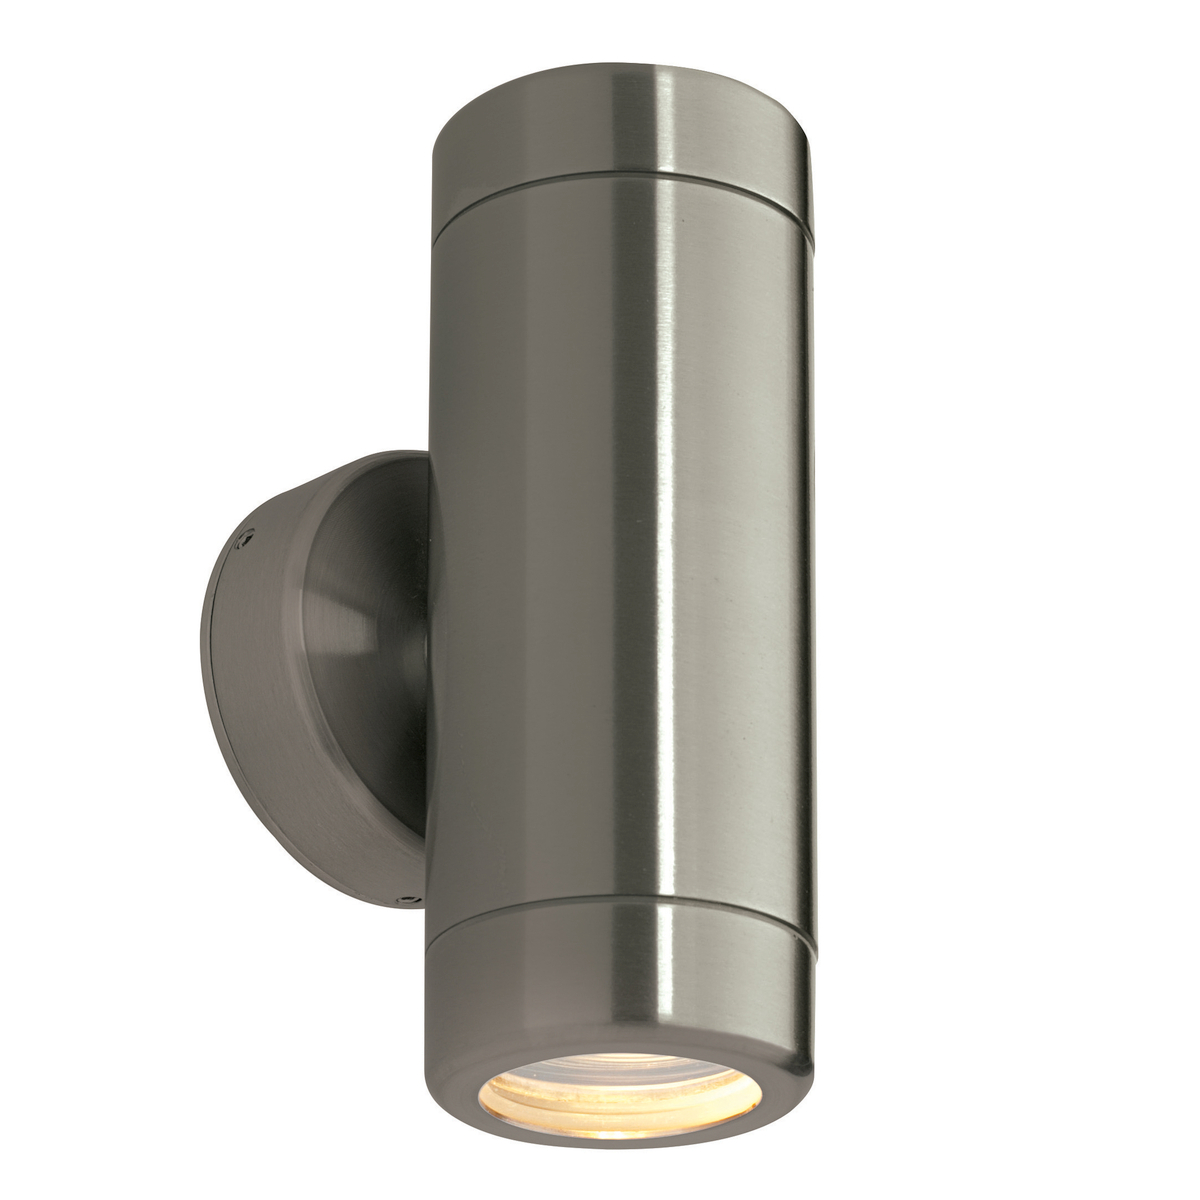 Outdoor Dimmable Led Wall Lights : Modern Aluminium Up Down GU10 LED IP44 Dimmable Outdoor Garden Porch Wall Light